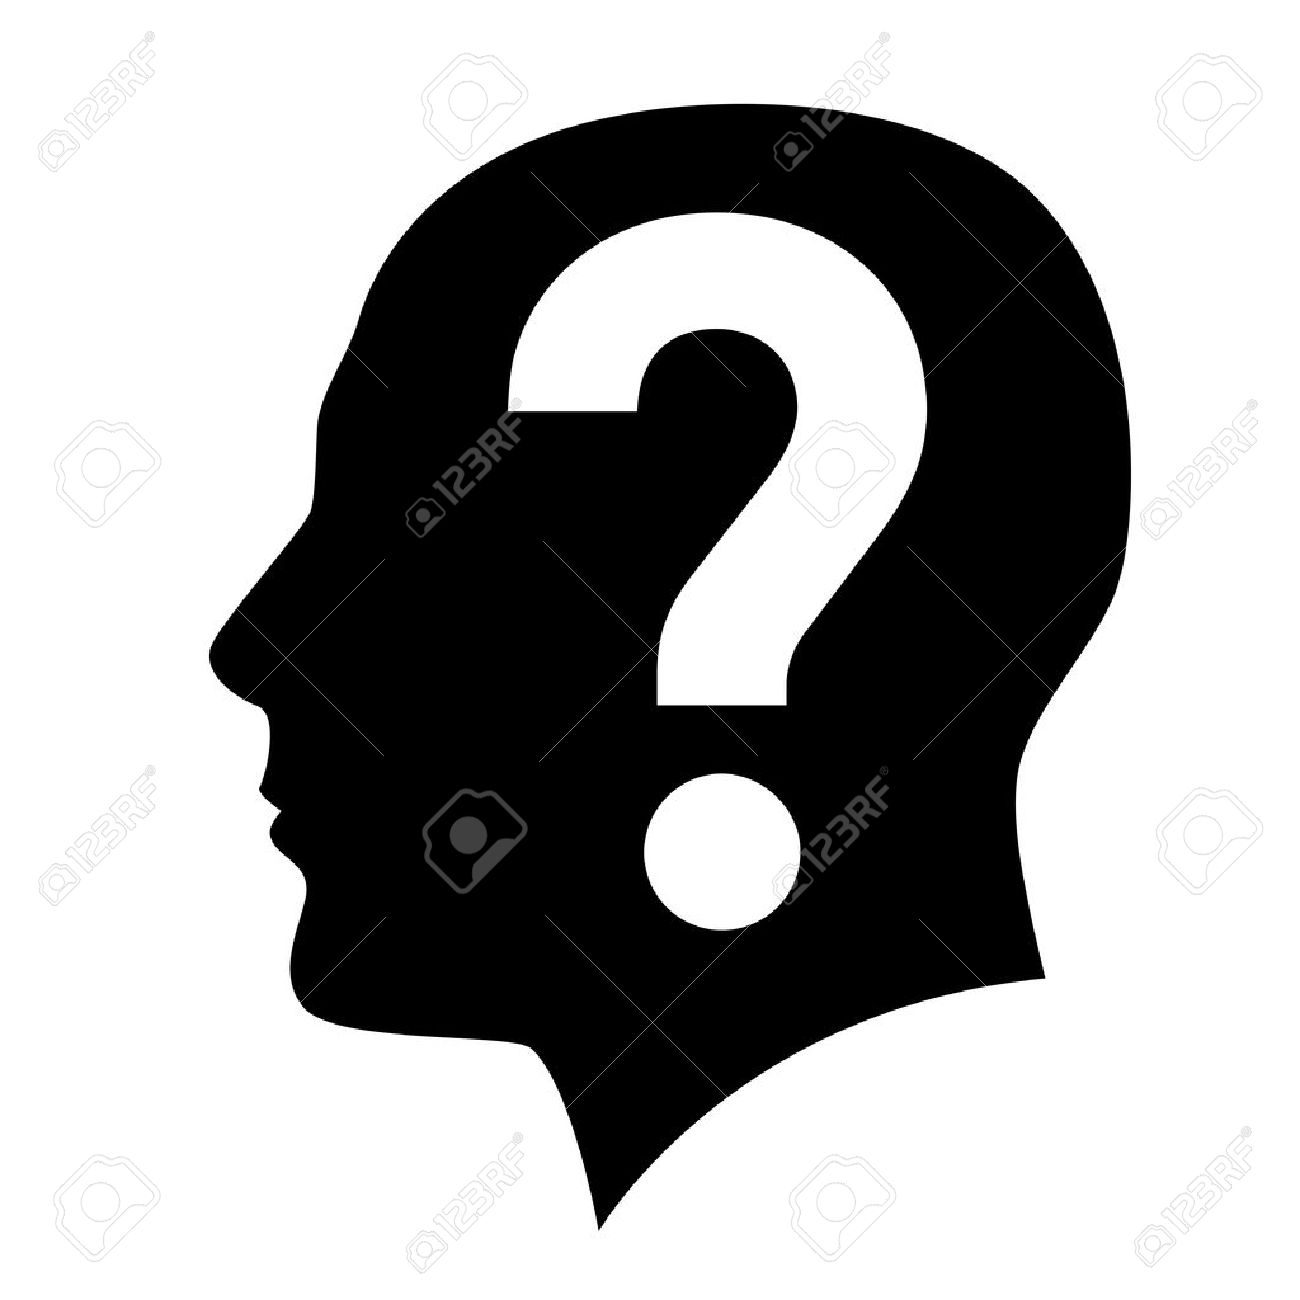 Pics photos clip art cartoon scientist with question mark stock - Human Head With Question Mark Symbol On White Stock Vector 15312895